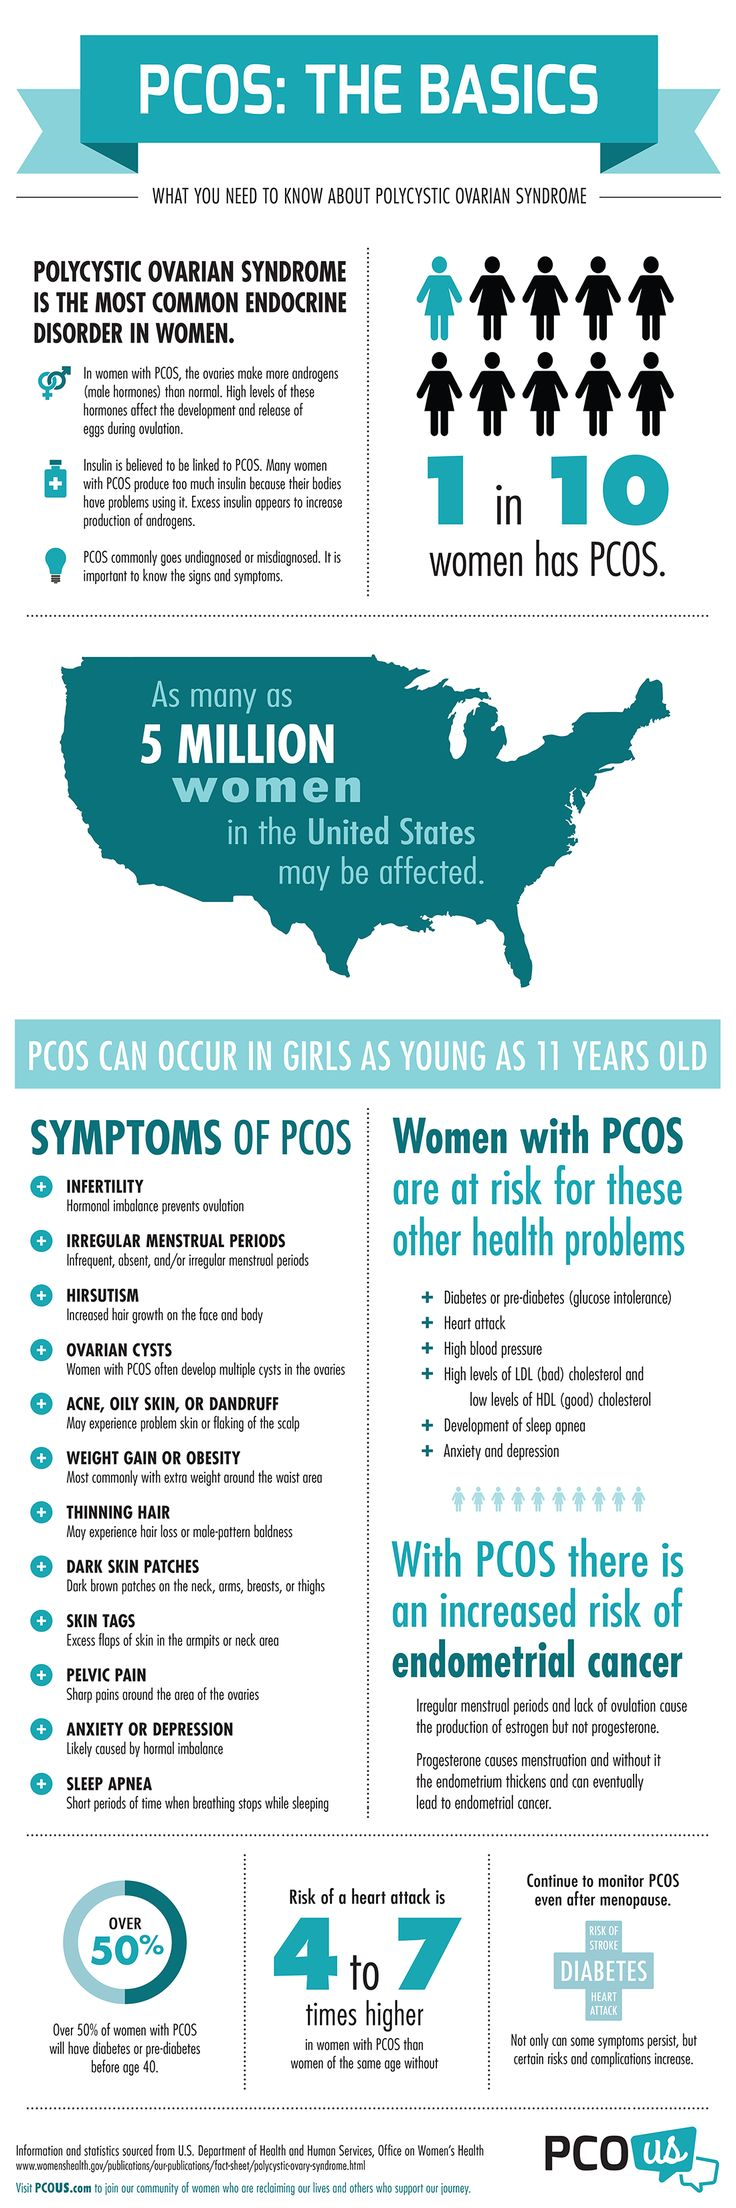 Infographic on PCOS basics from PCOUS.com